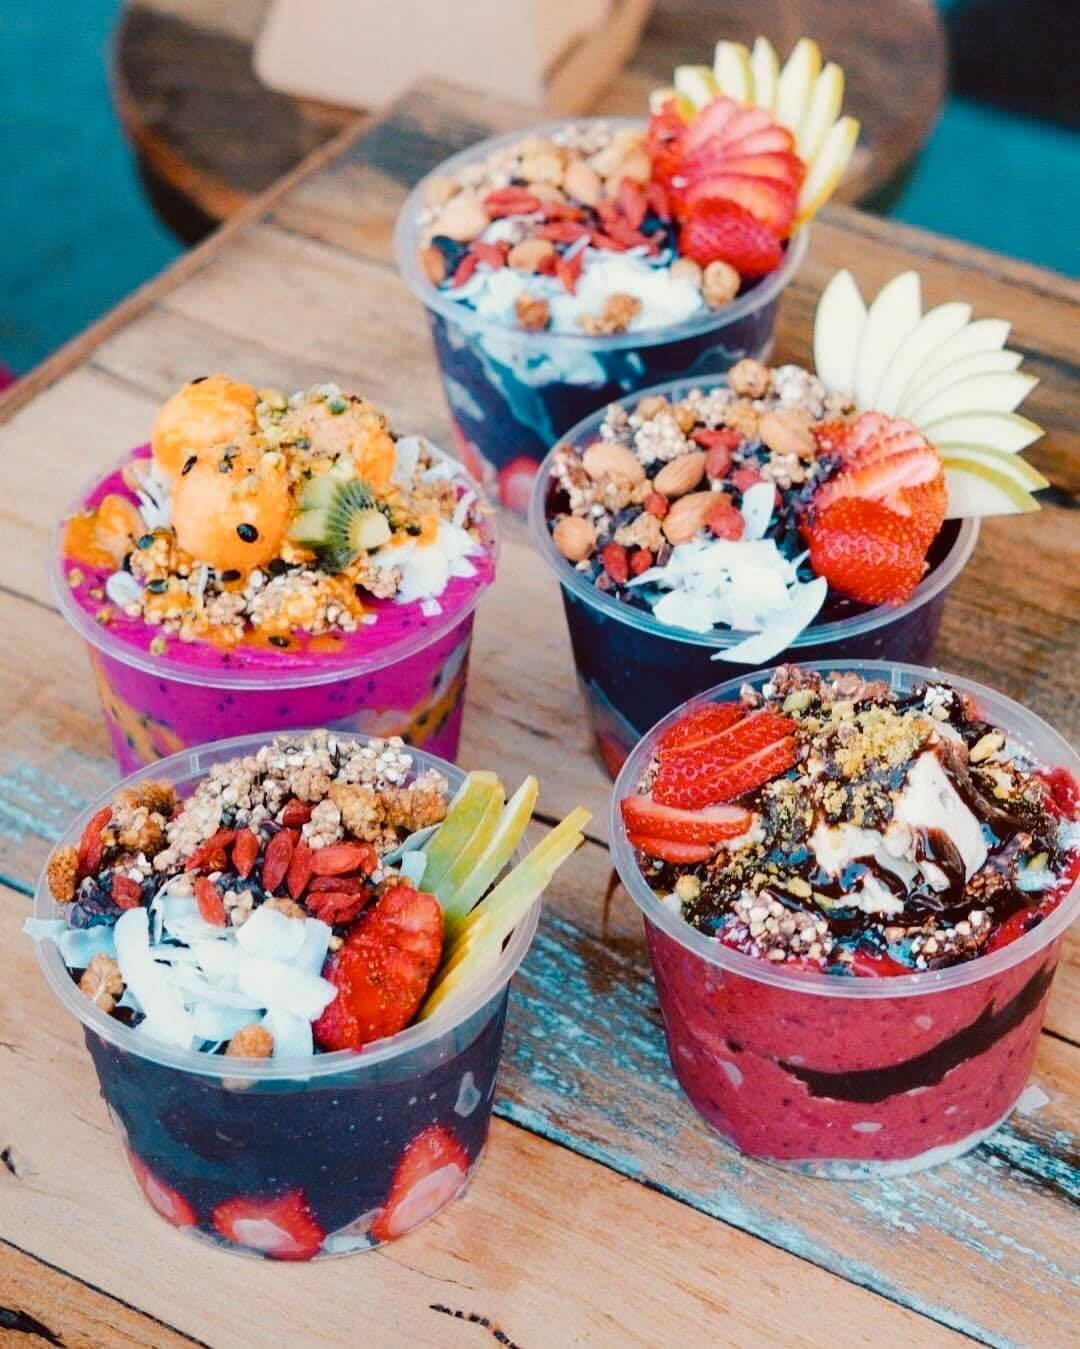 Acai bowls and smoothie food truck catering